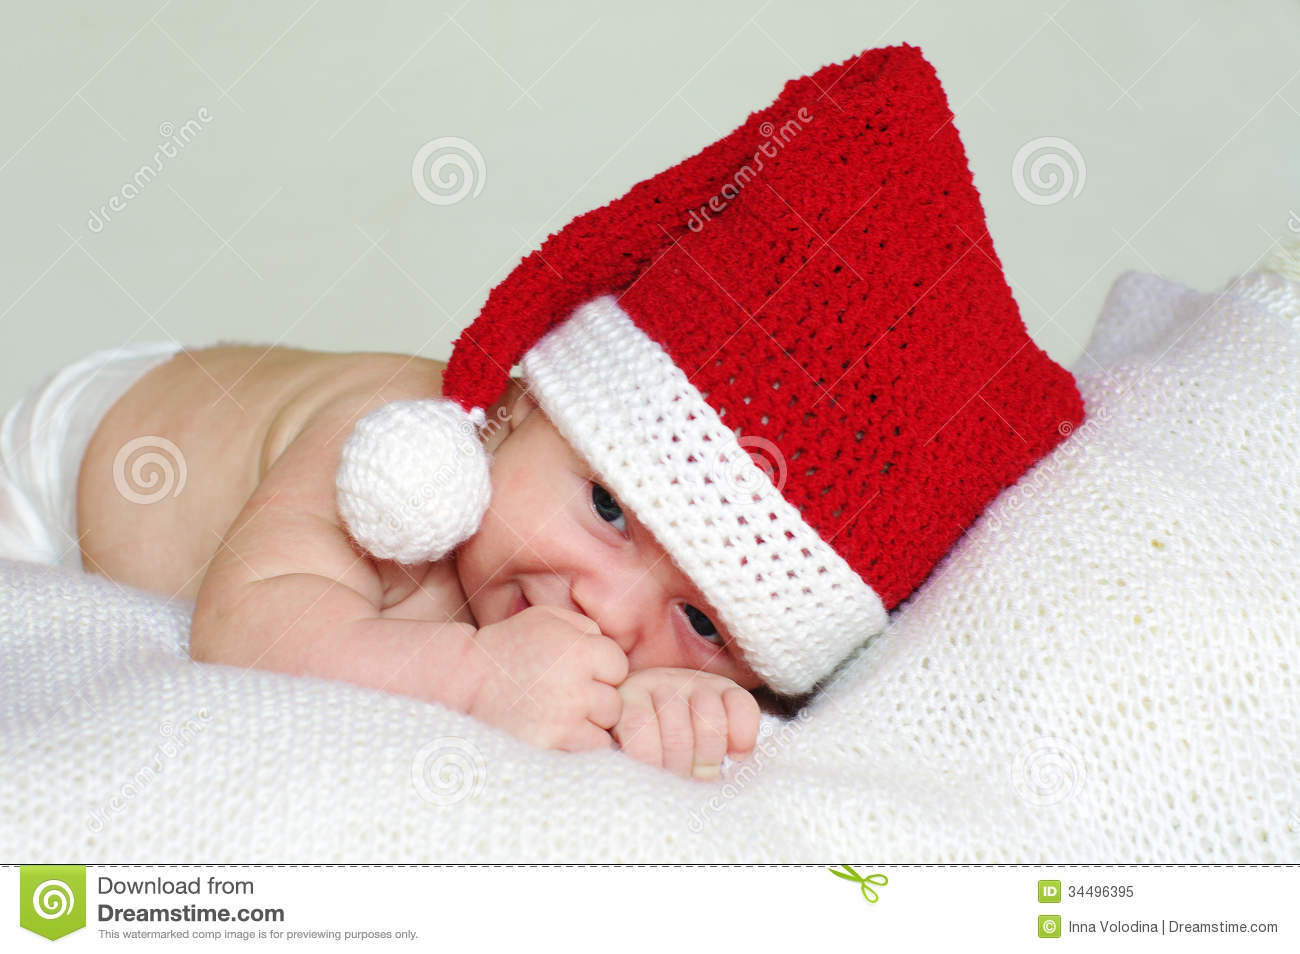 Sad baby age of 2 months in red New Year s hat